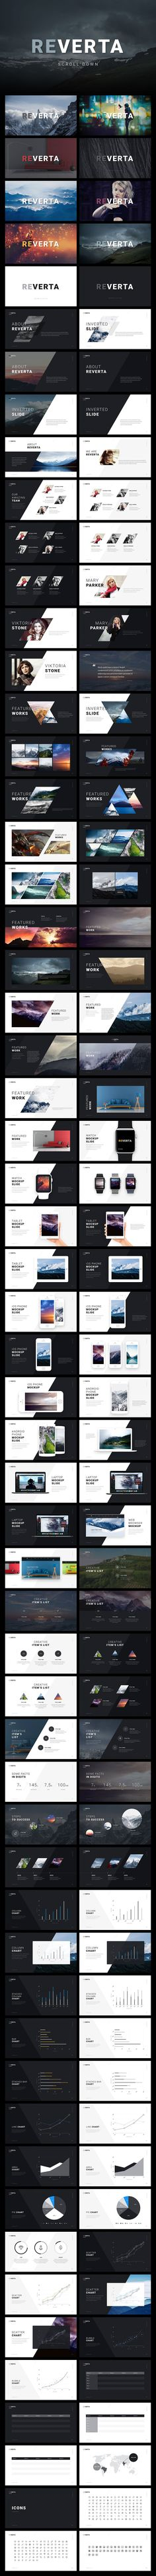 Reverta PowerPoint Template by ReworkMedia on Map Design, Deck Design, Google Material, Creative Powerpoint Presentations, Agriculture Logo, Google Fonts, Map Vector, Text Style, Keynote Template